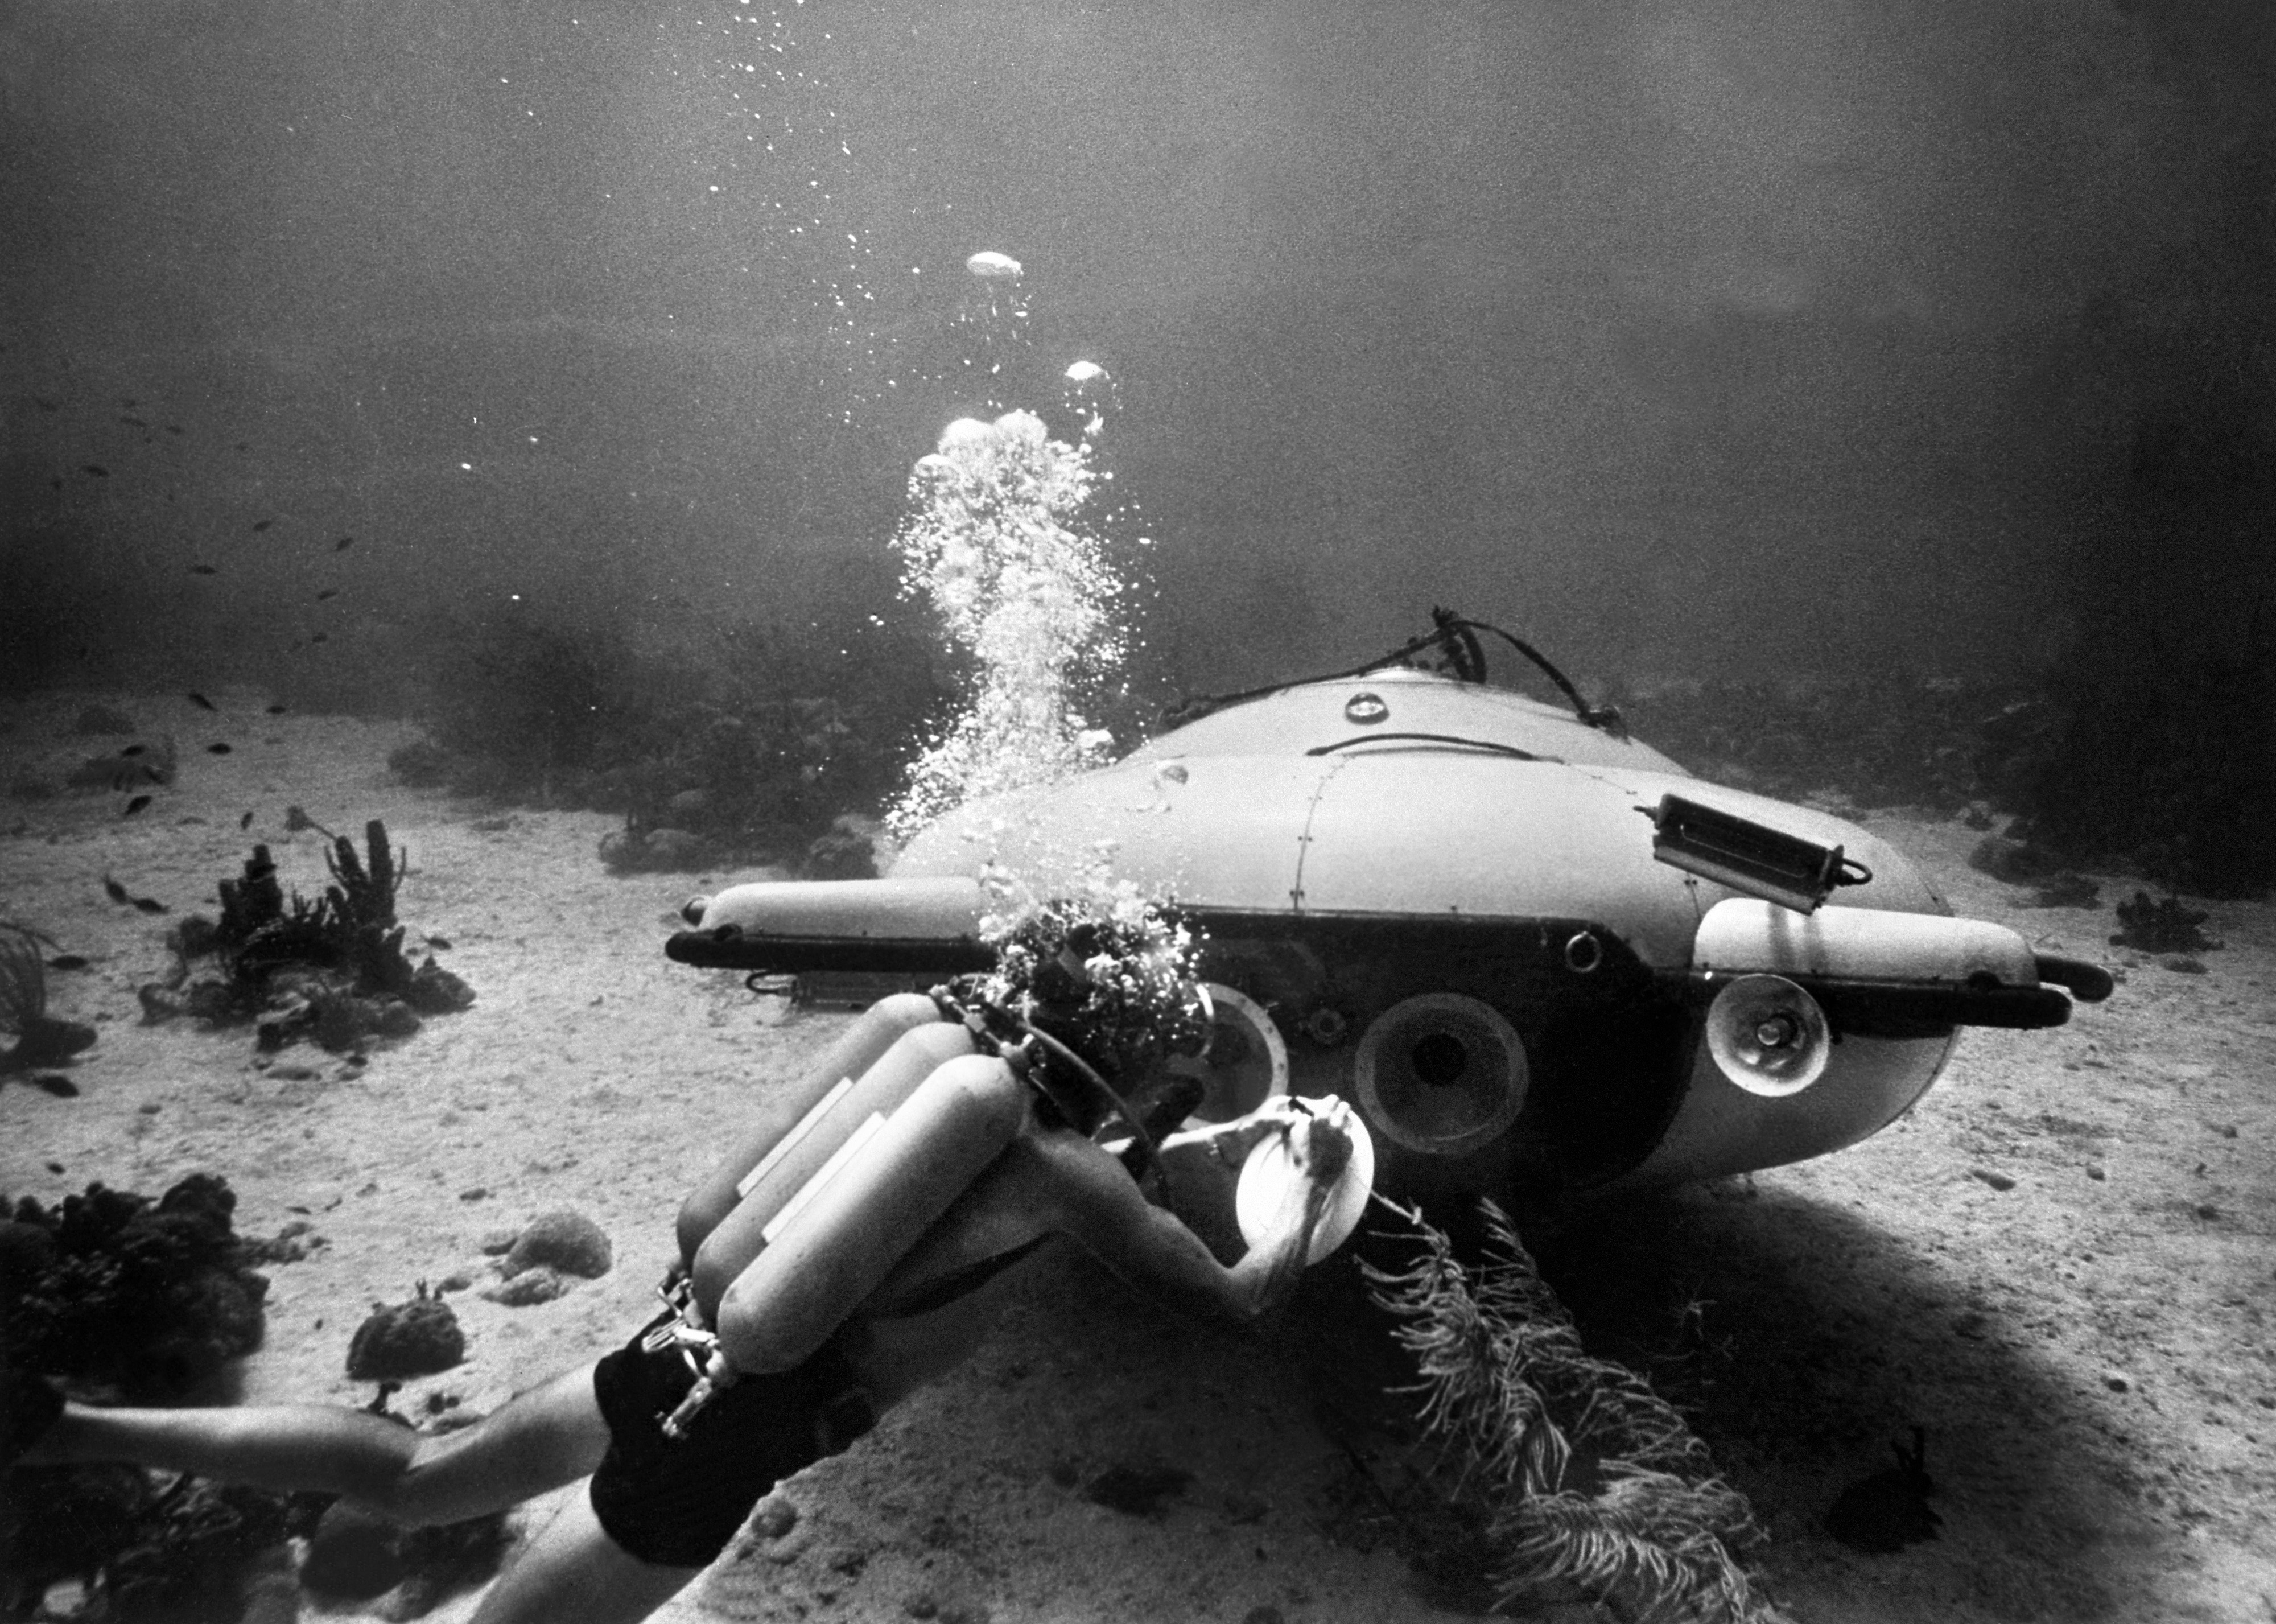 Jacques Cousteau and his diving saucer